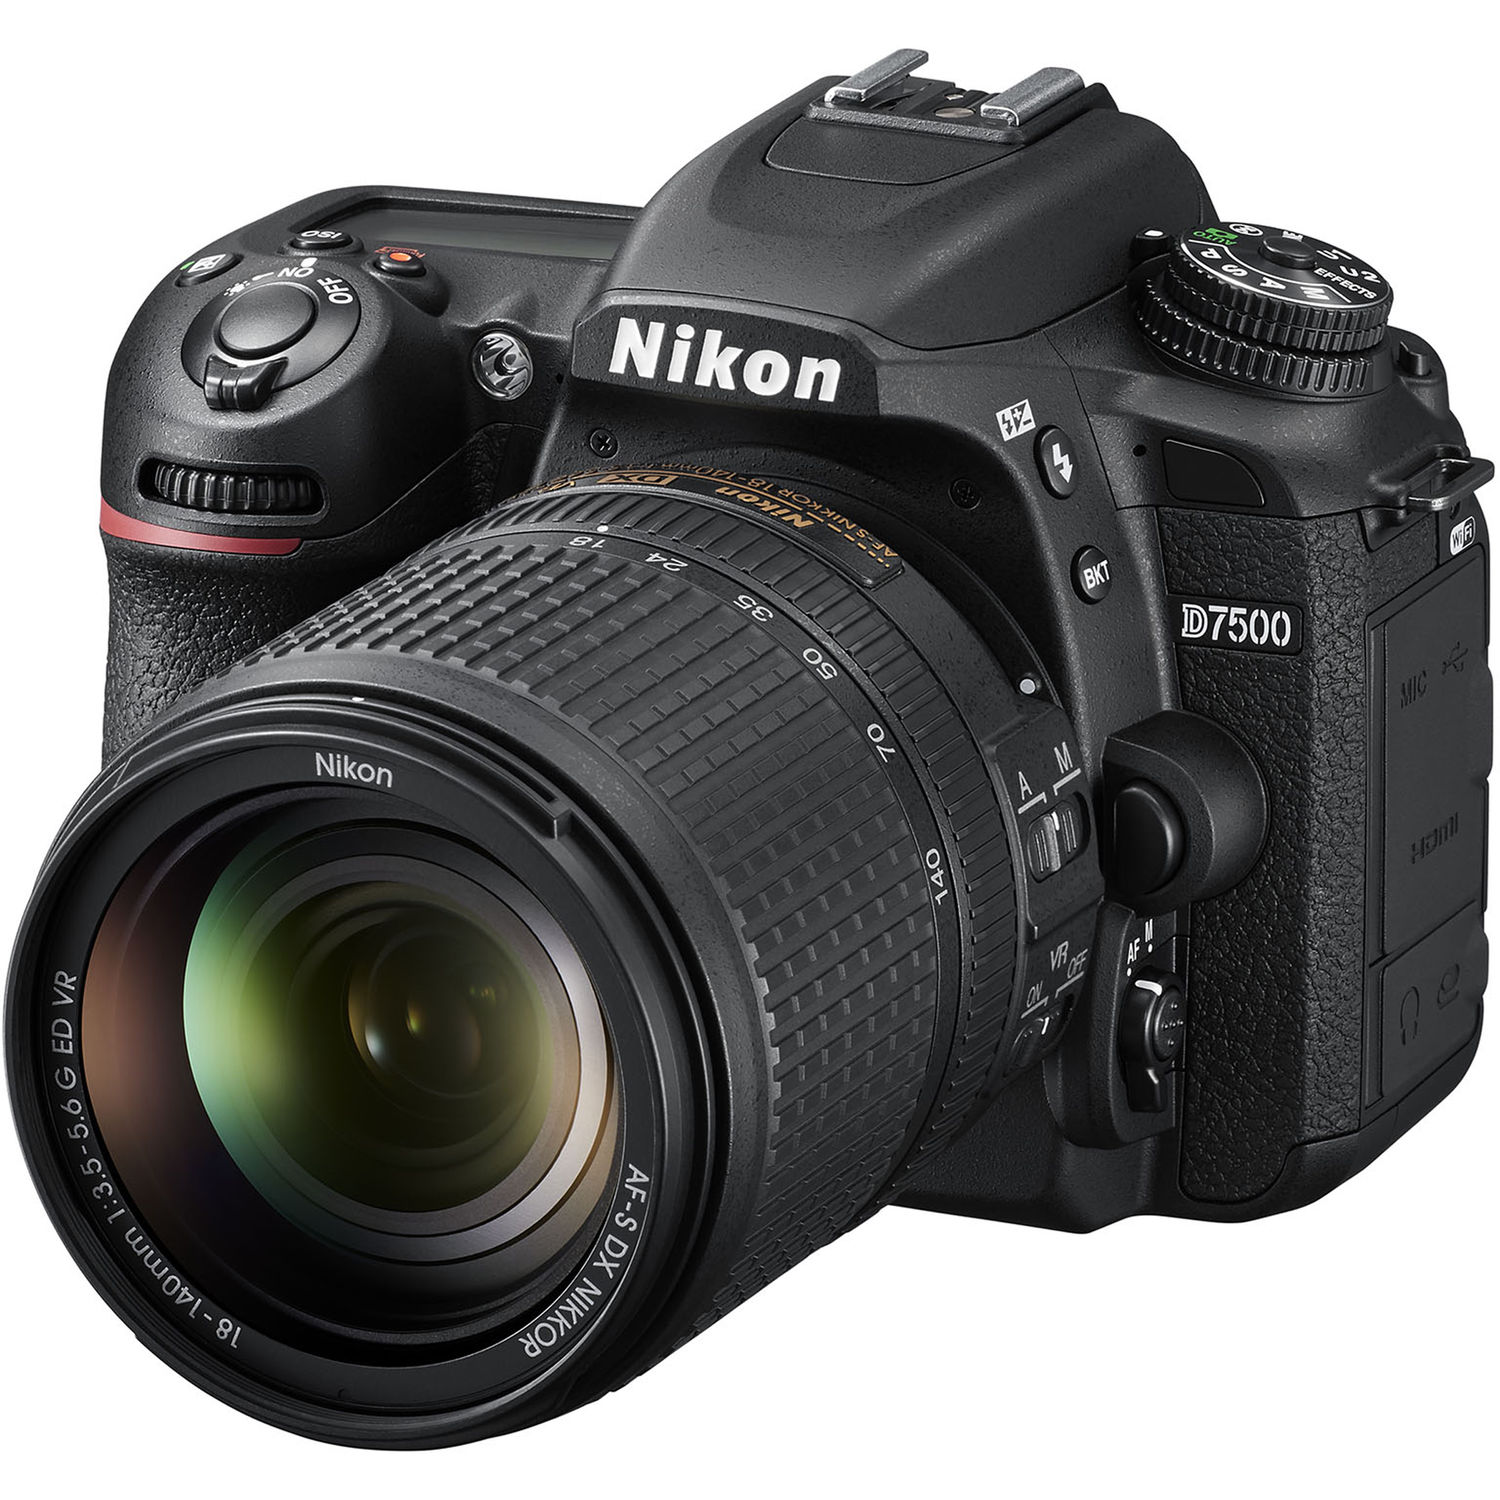 Nikon D7500 DX Digital SLR with 18-140mm  VR Lens